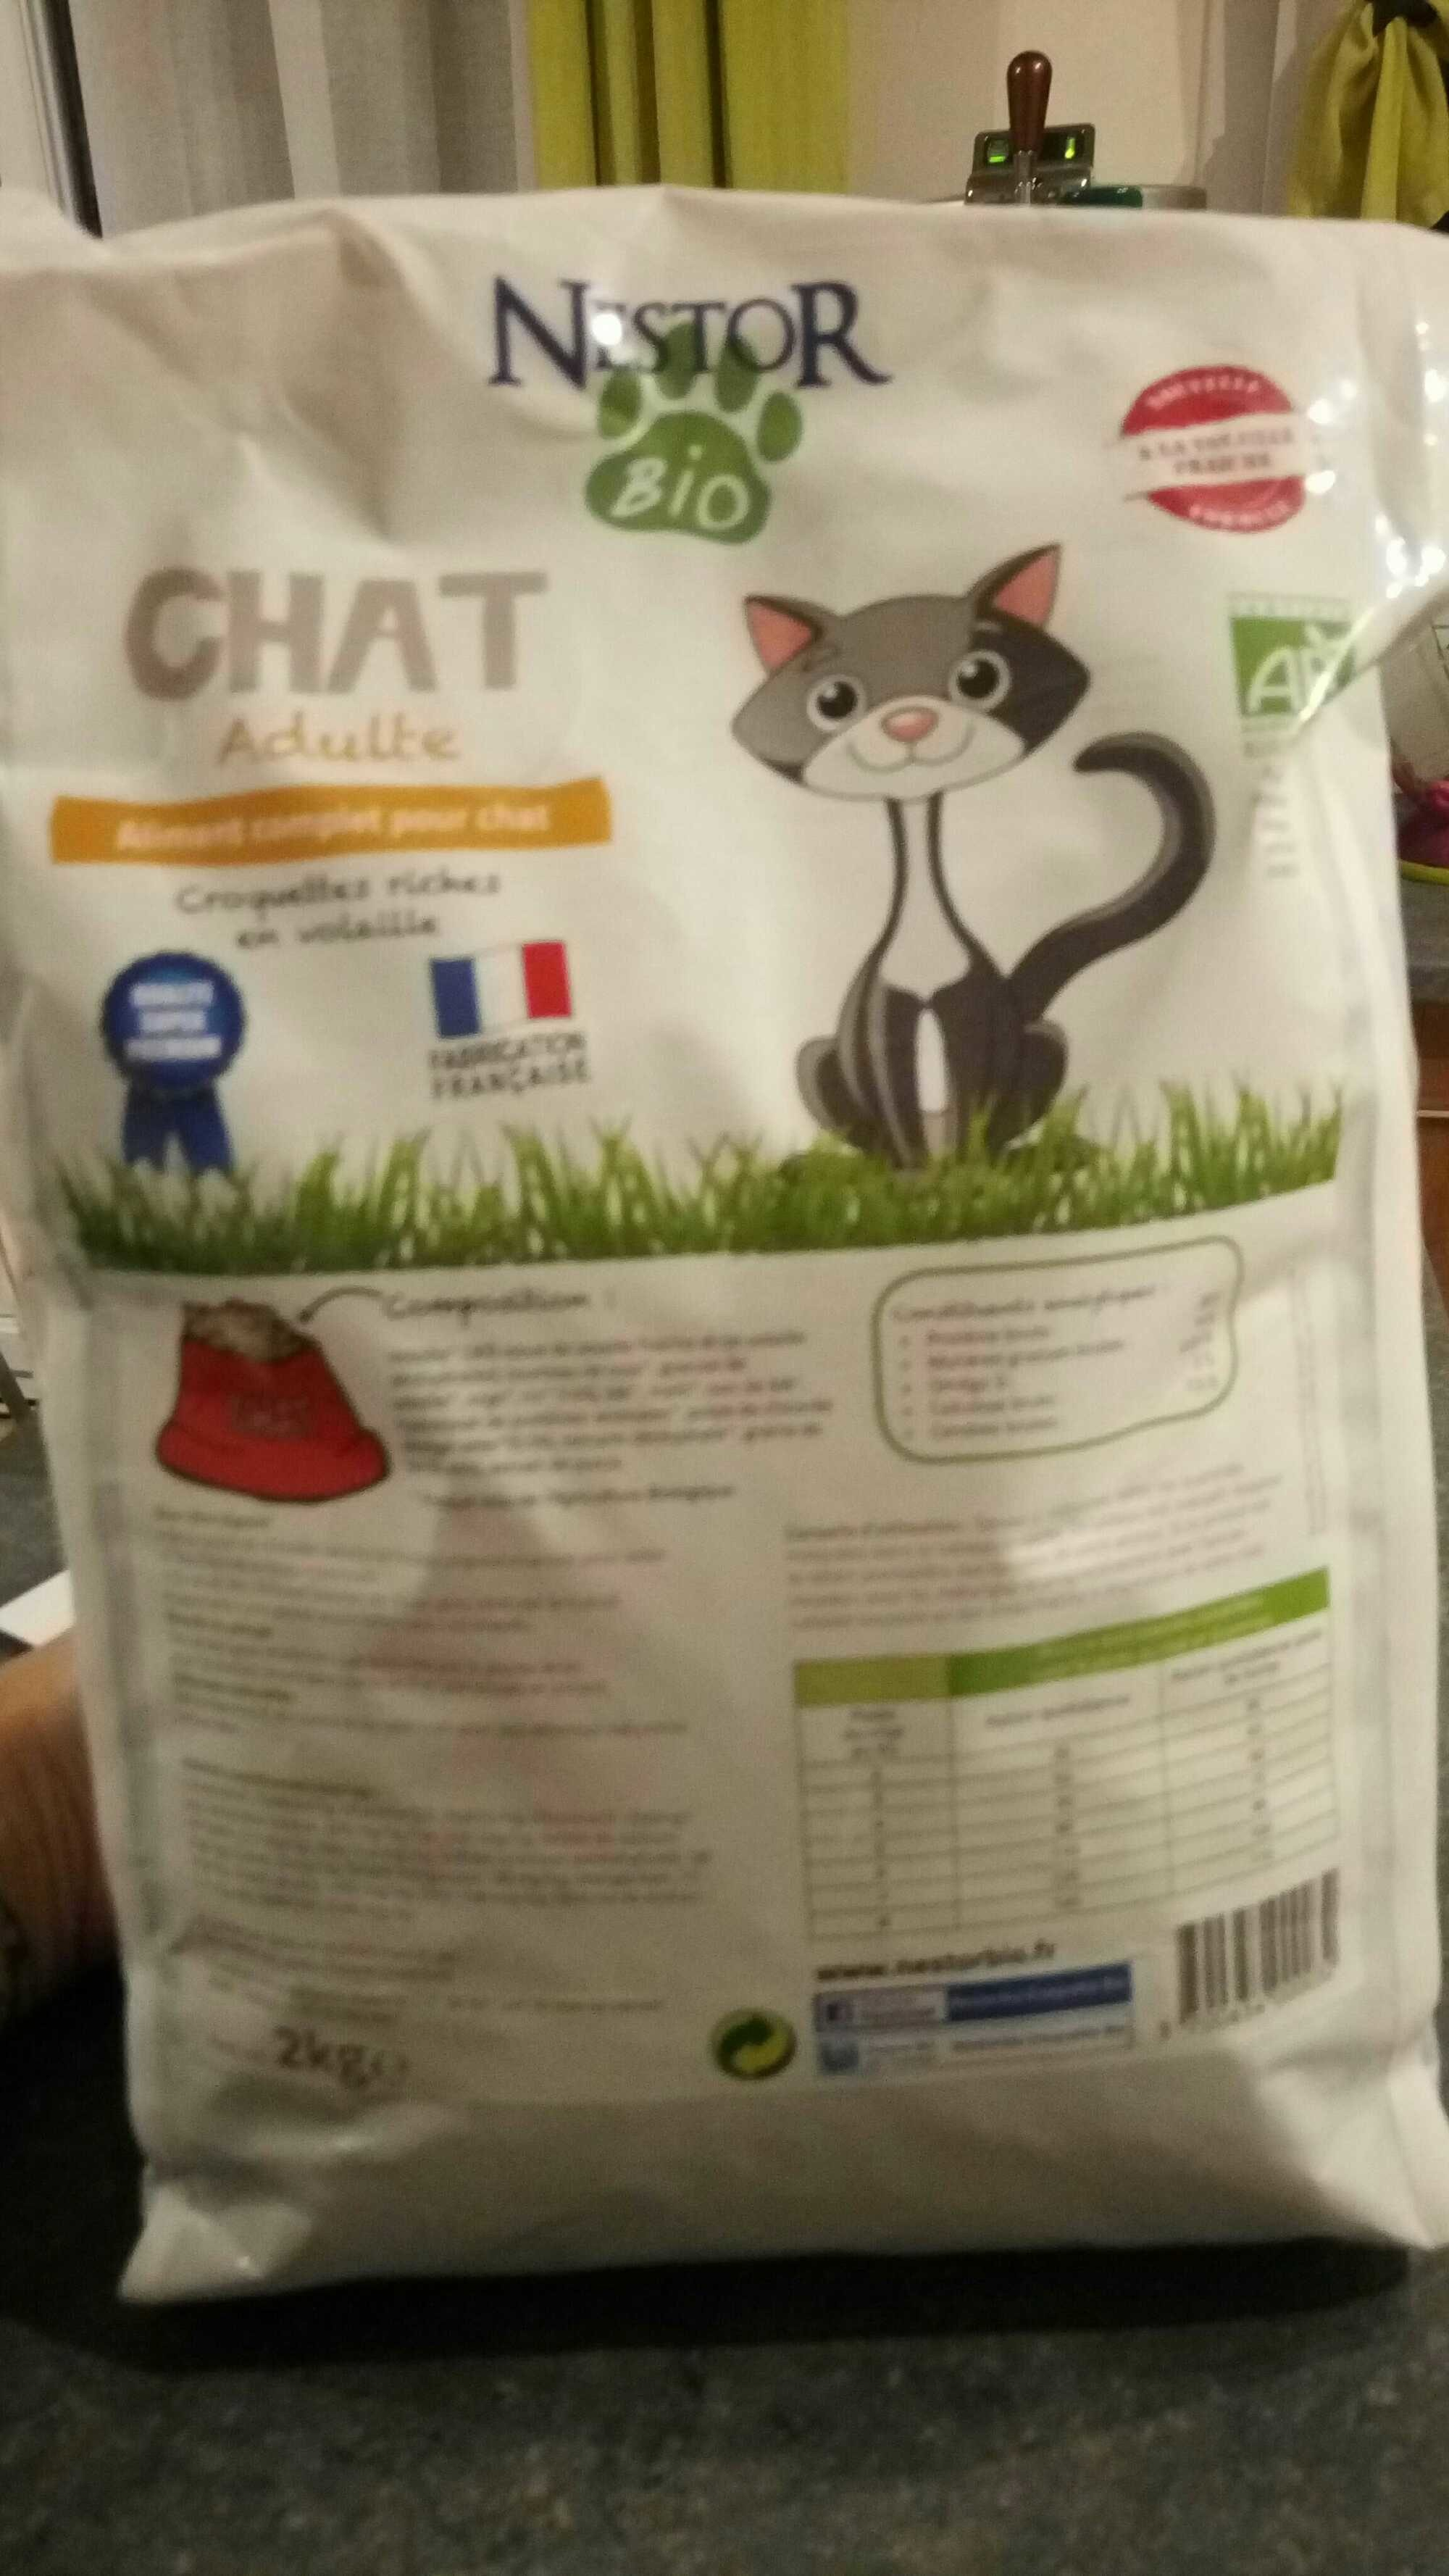 Aliment complet pour chat - Product